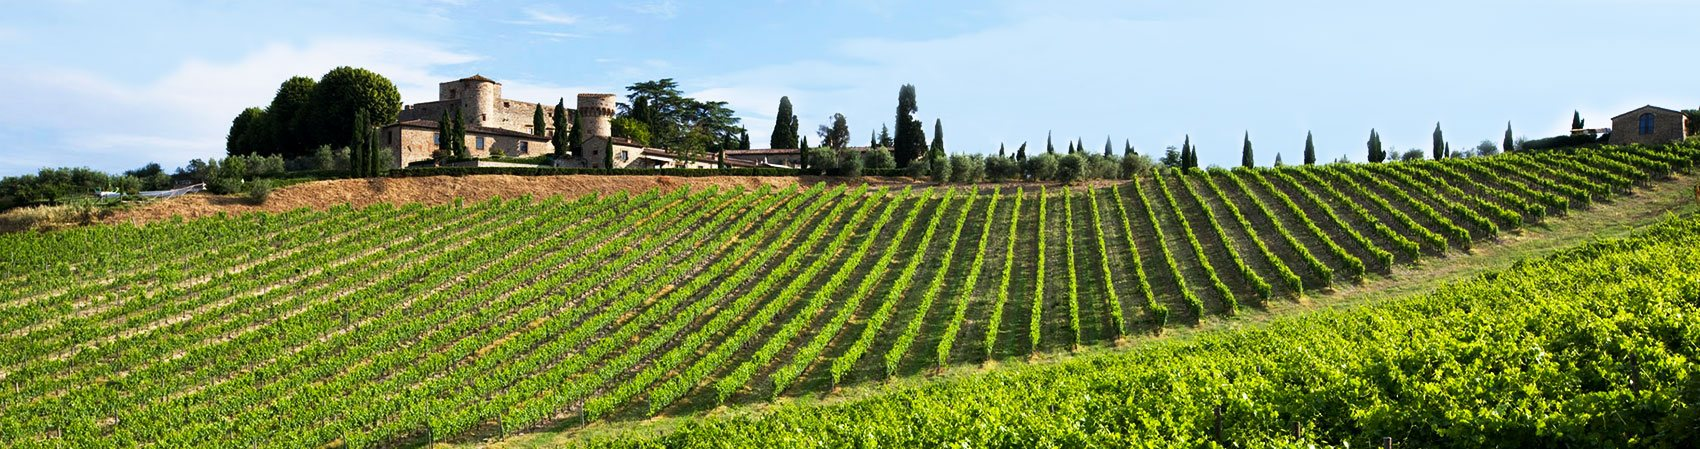 Chianti, Tuscany: view of a vineyard